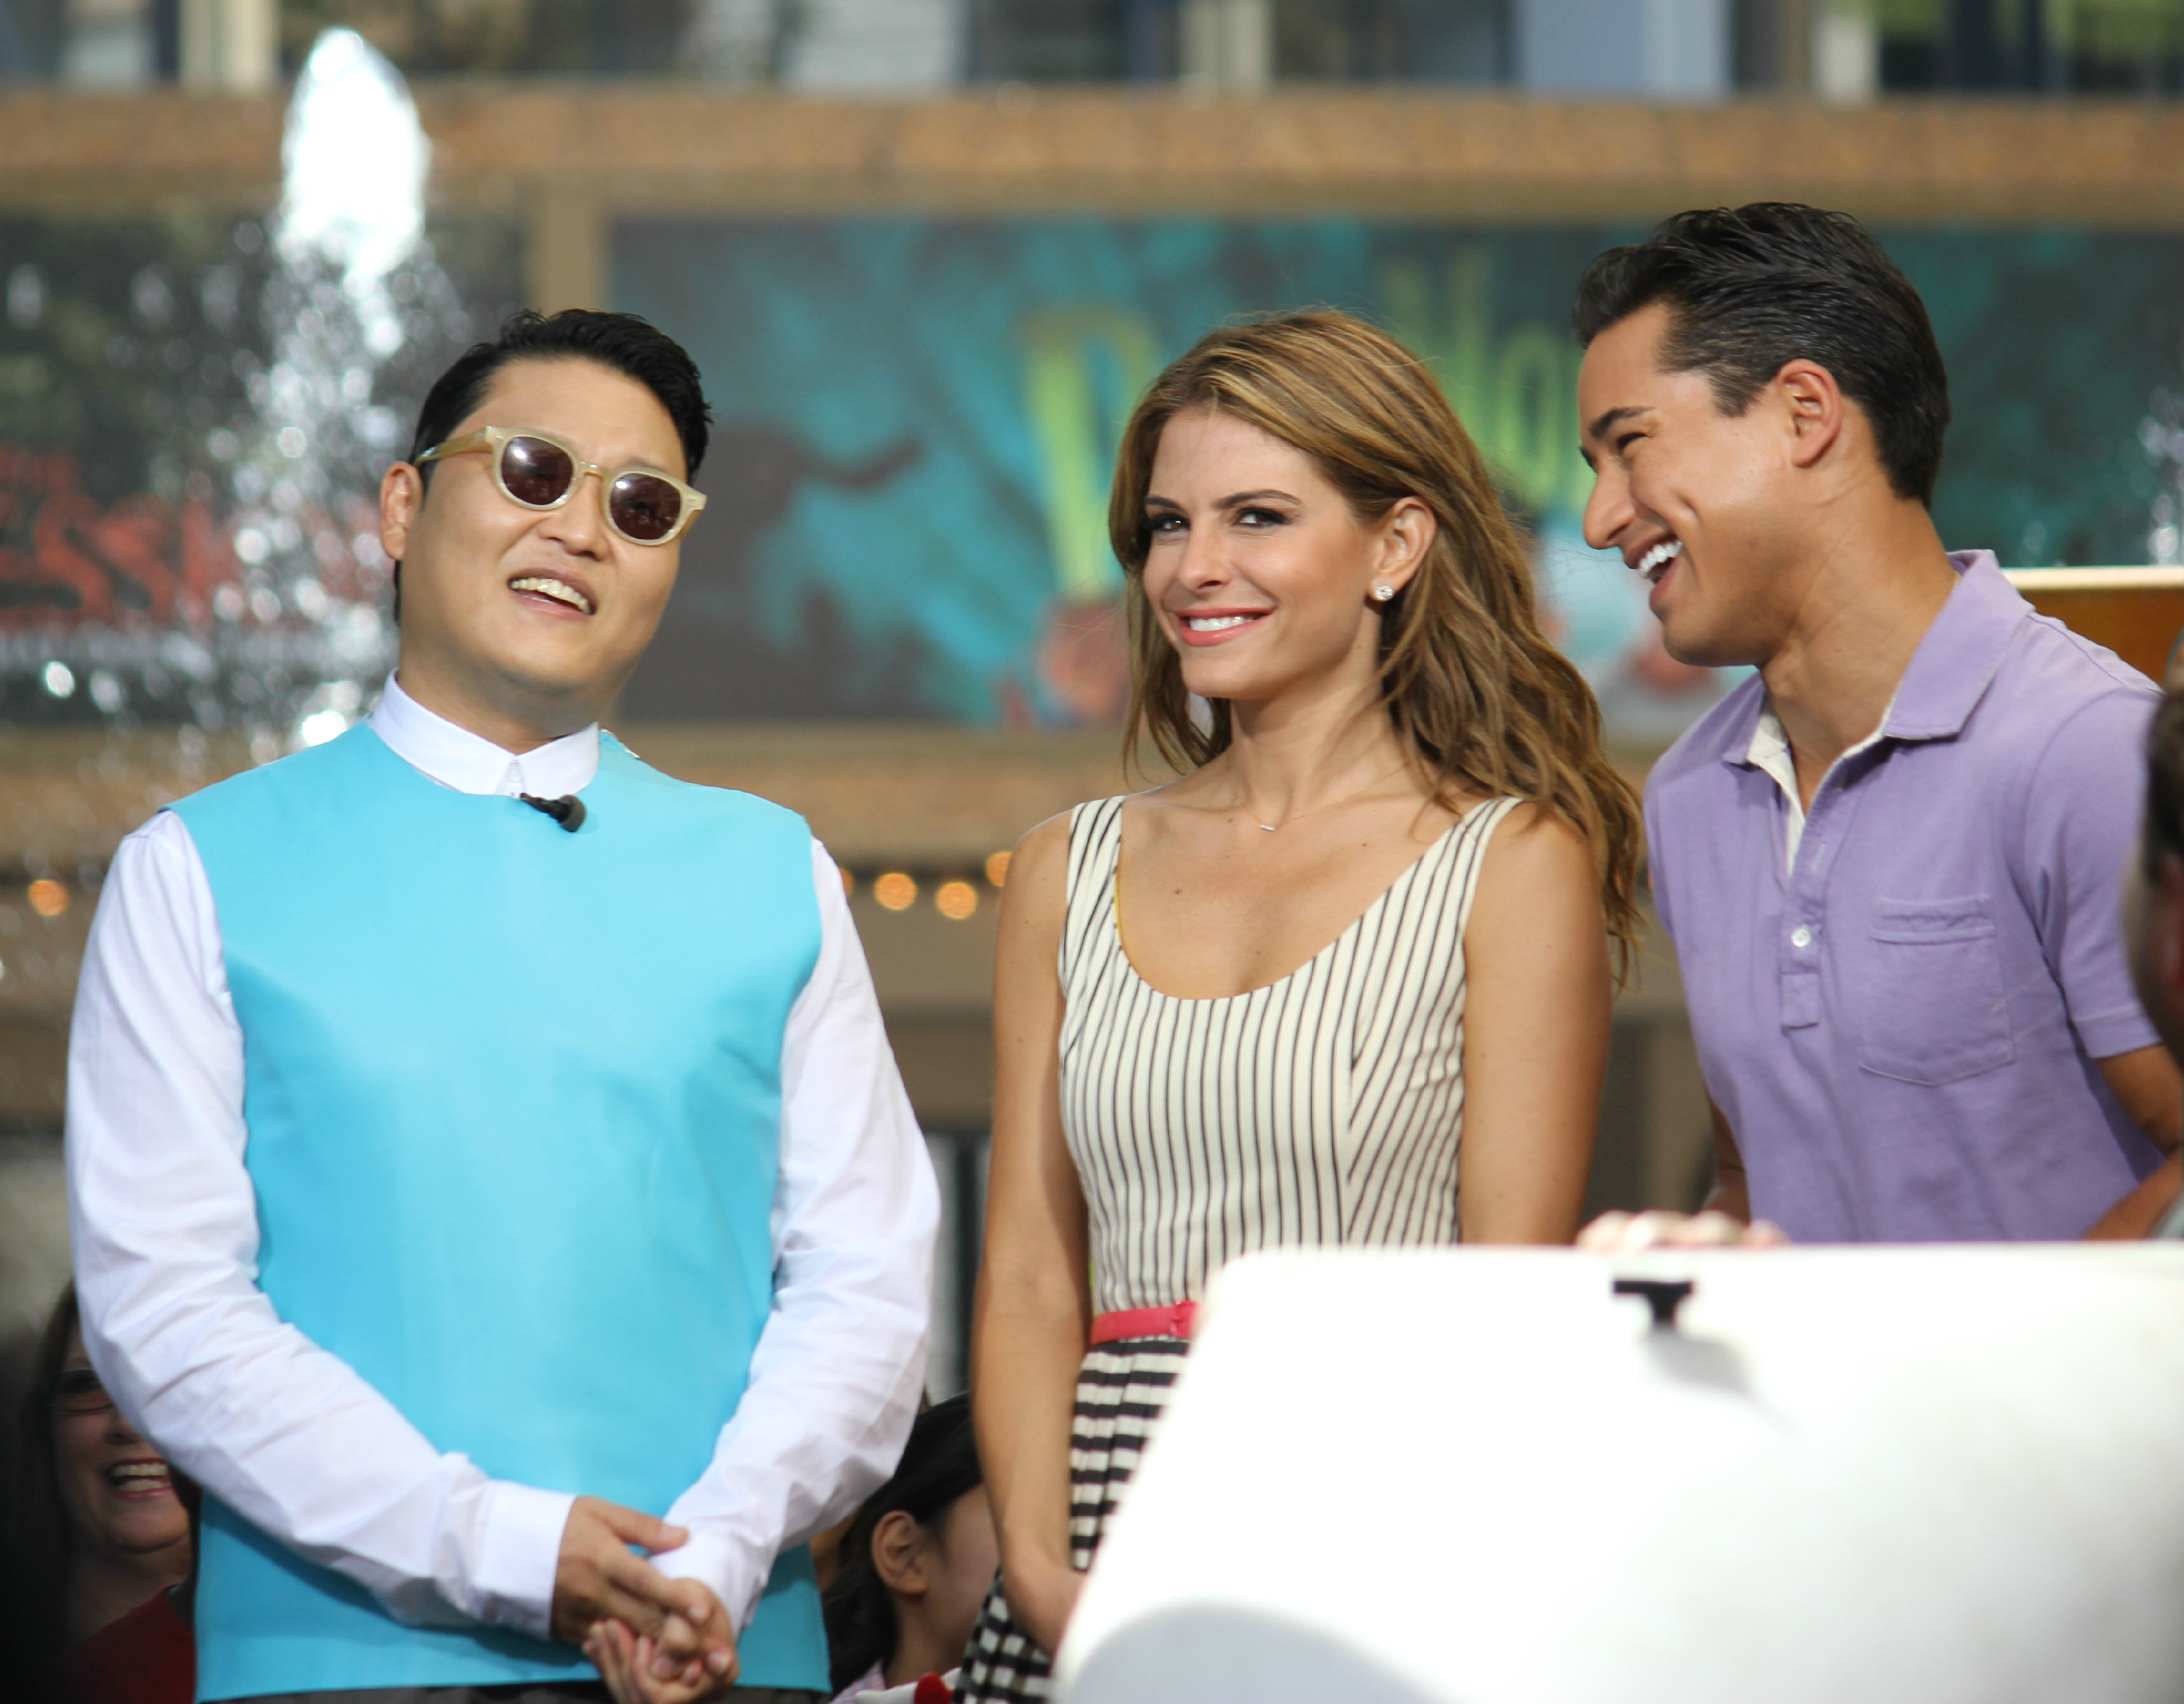 South Korean pop star Psy at The Grove with Maria Menounos and Mario Lopez for extra